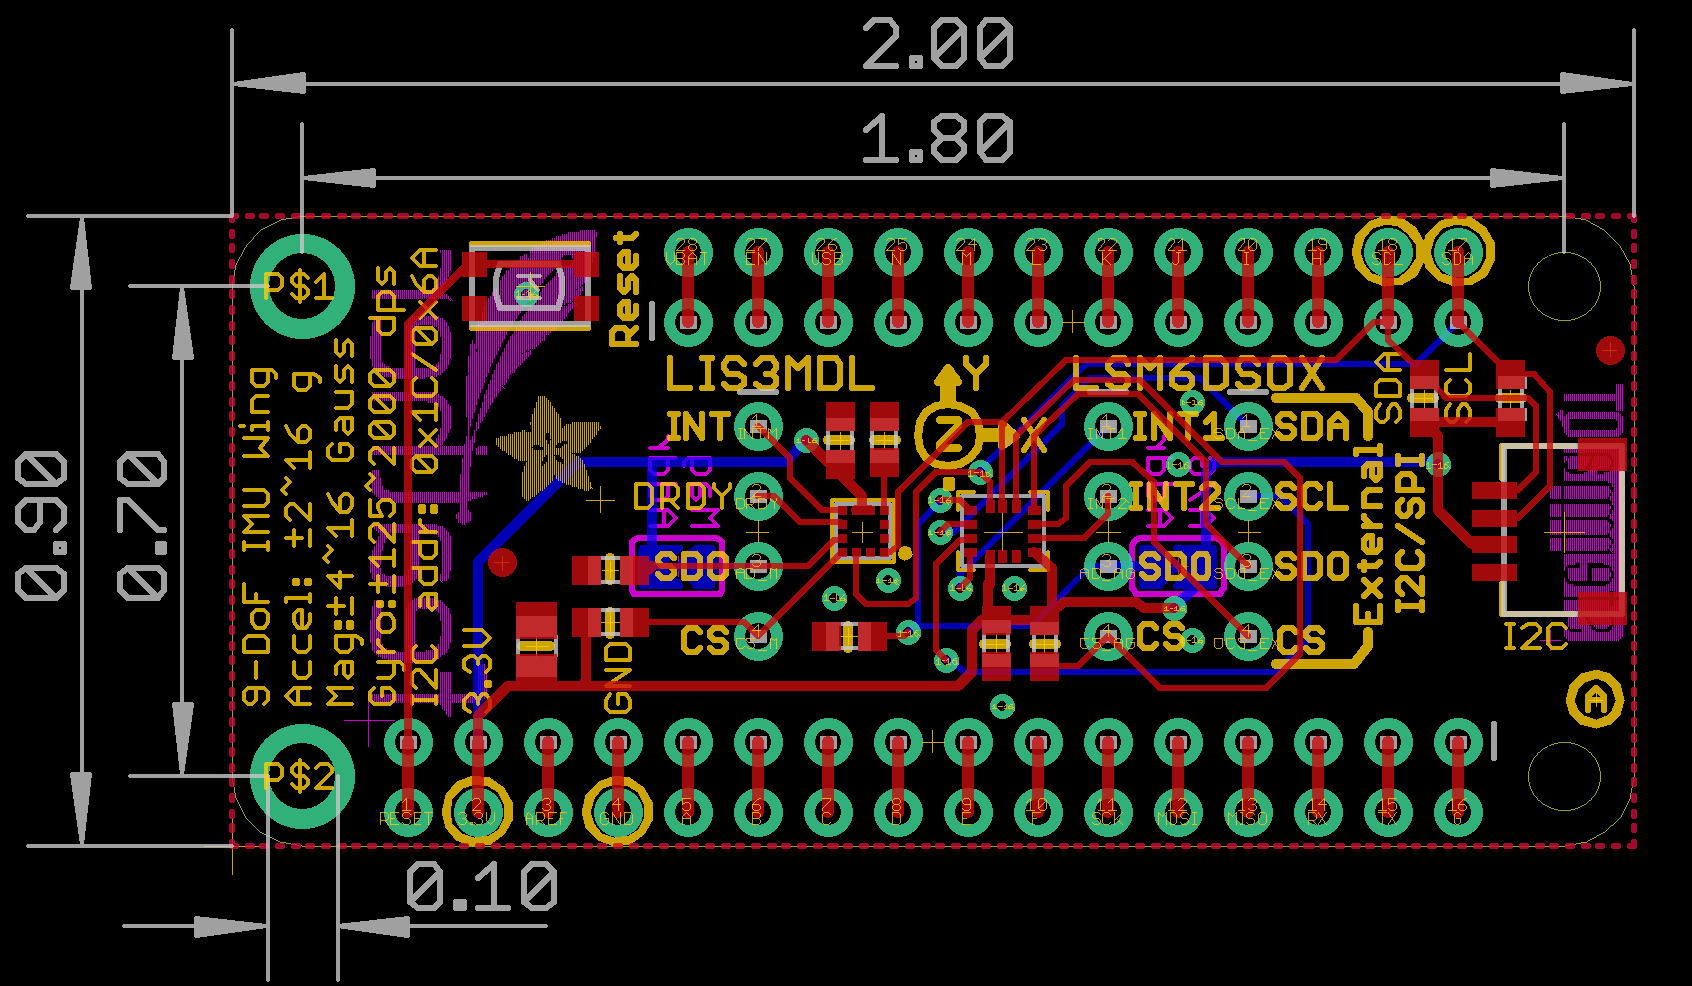 adafruit_products_4565_fab_print.png